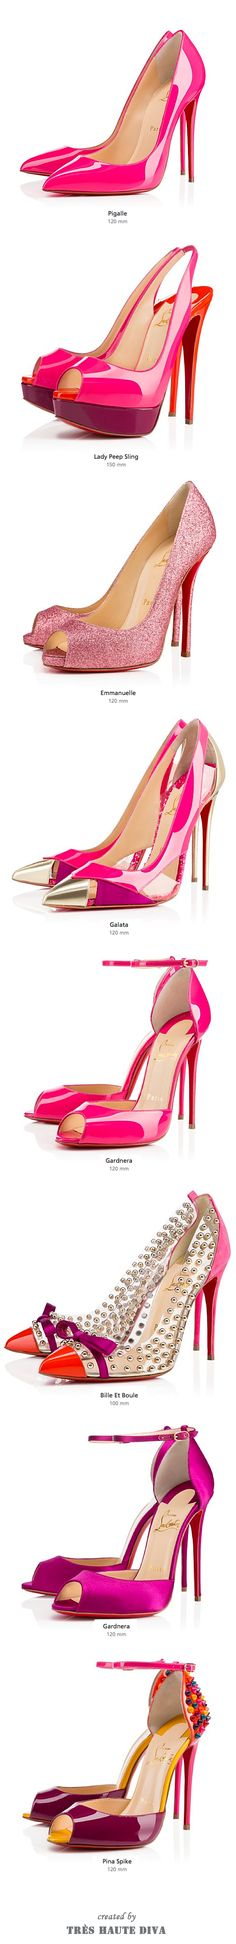 #Christian Louboutin Pinks, Fall 2014- ♔LadyLuxury♔